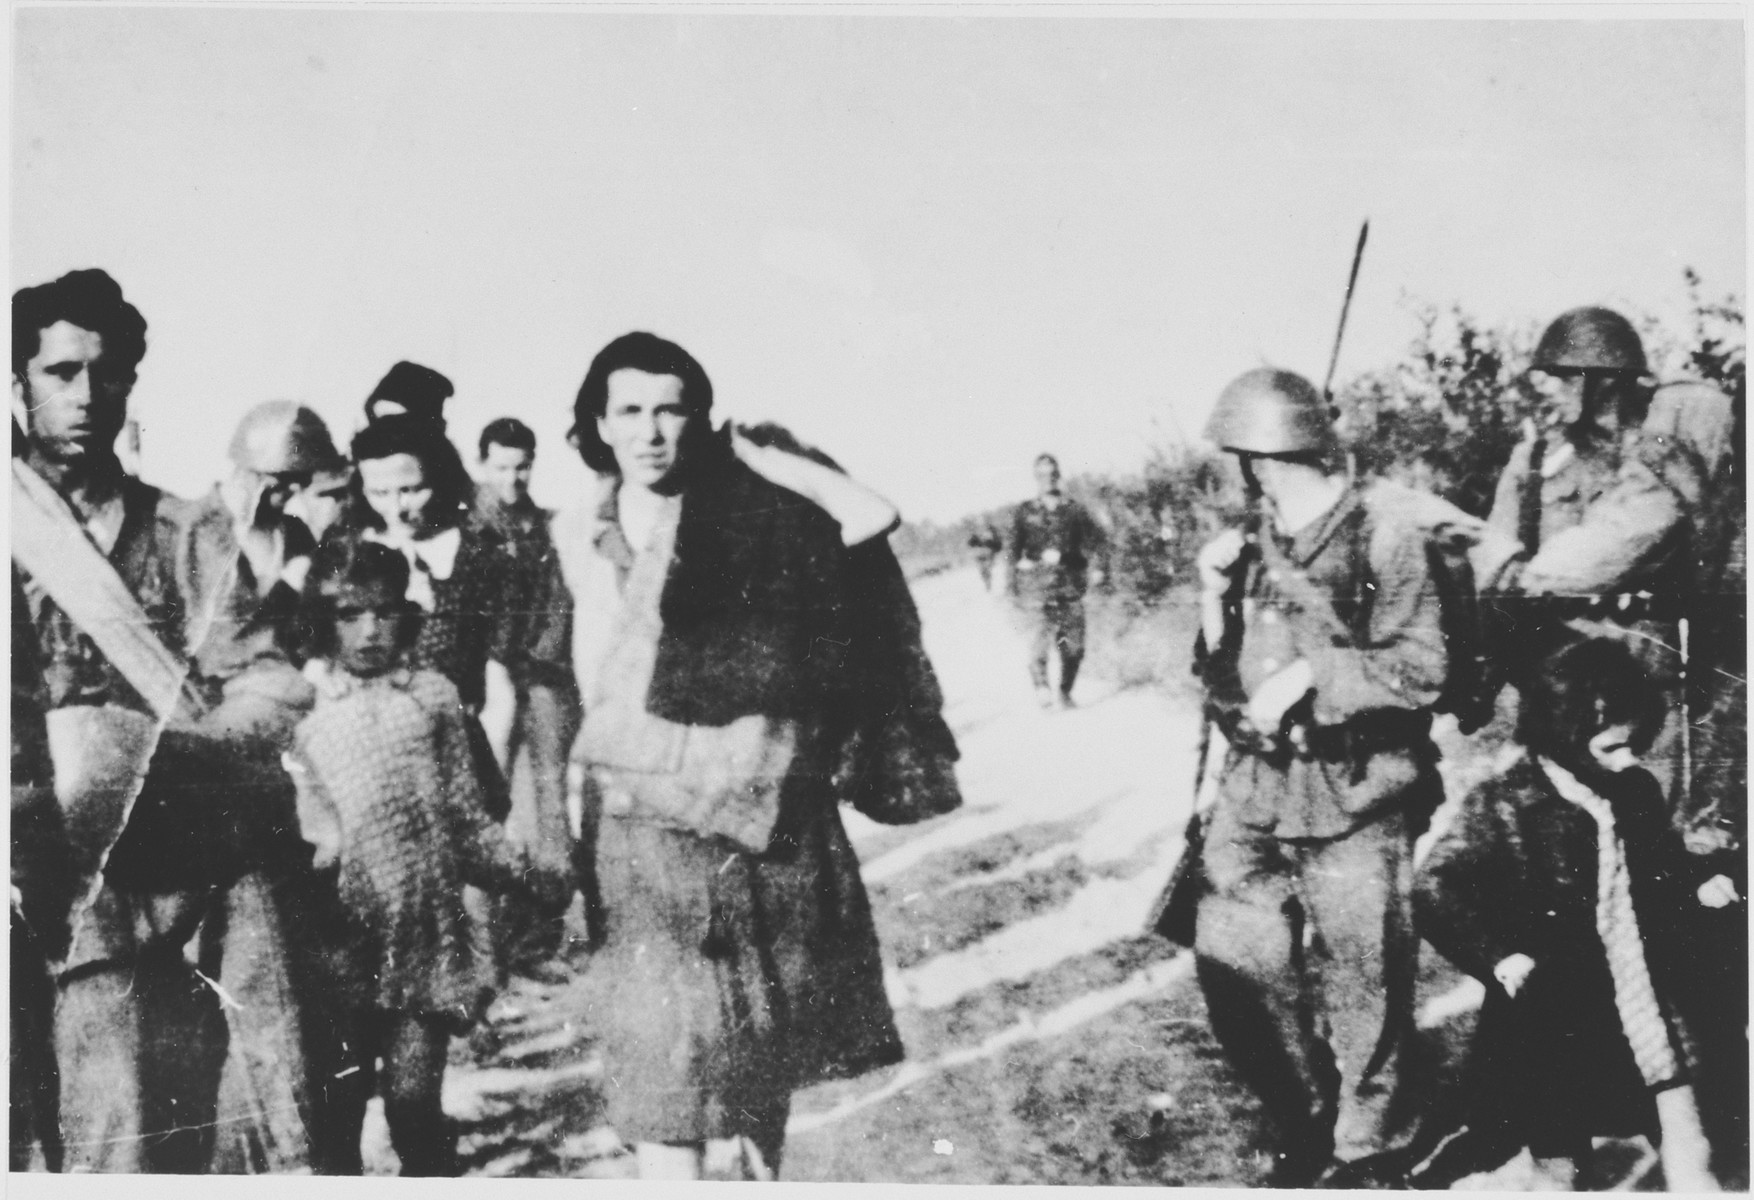 Soldiers lead a group of Serbian villagers from the Kozara region who are being deported to Croatian concentration camps.